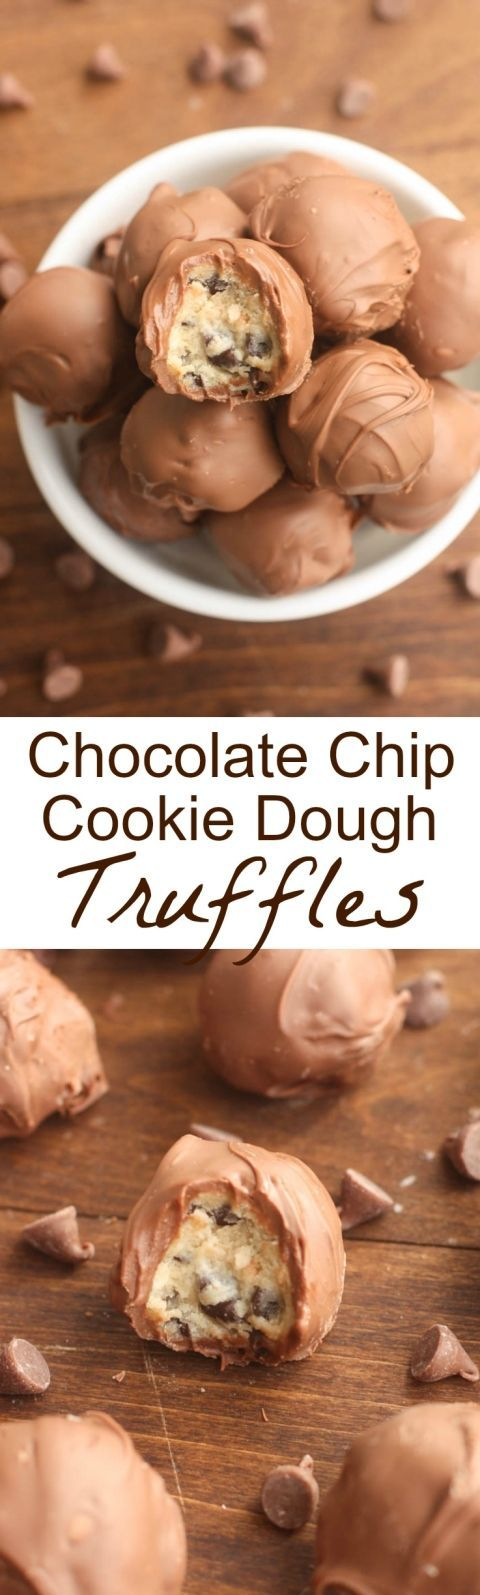 Chocolate Chip Cookie Dough Truffles Recipe via Tastes Better From Scratch - A simple egg-free cookie dough dipped in melted chocolate! These bite-size treats are easy and delicious! The BEST Bite Size Dessert Recipes - Mini, Individual, Yummy Treats, Perfectly Pretty for Your Baby and Bridal Showers, Birthday Party Dessert Tables and Holiday Celebrations! #bitesizedesserts #individualdesserts #minidesserts #tinyfood #partydesserts #dessertsforacrowd #dessertrecipes #holidayrecipes